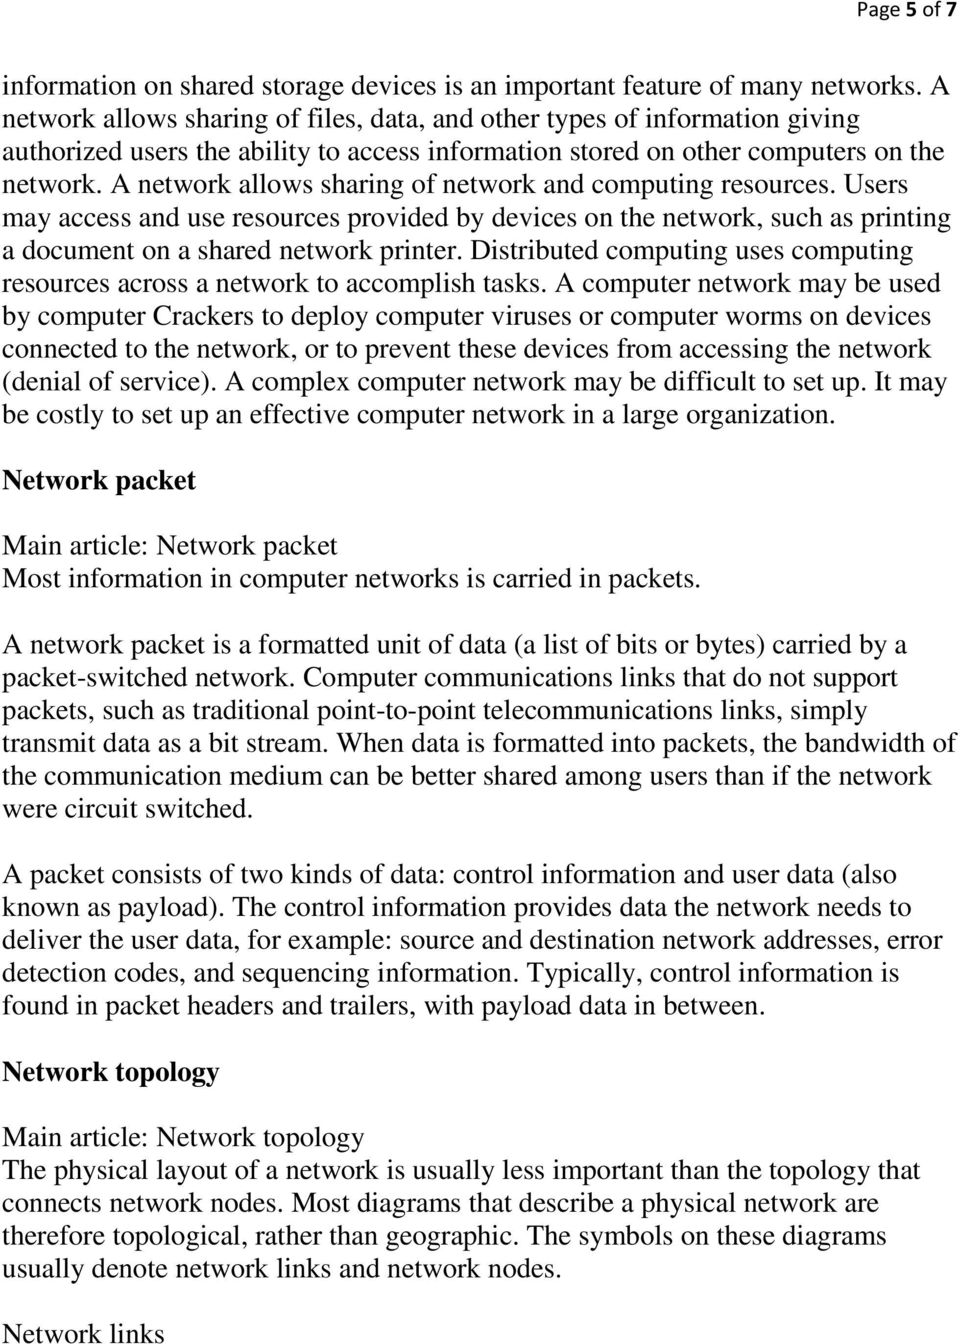 A network allows sharing of network and computing resources. Users may access and use resources provided by devices on the network, such as printing a document on a shared network printer.